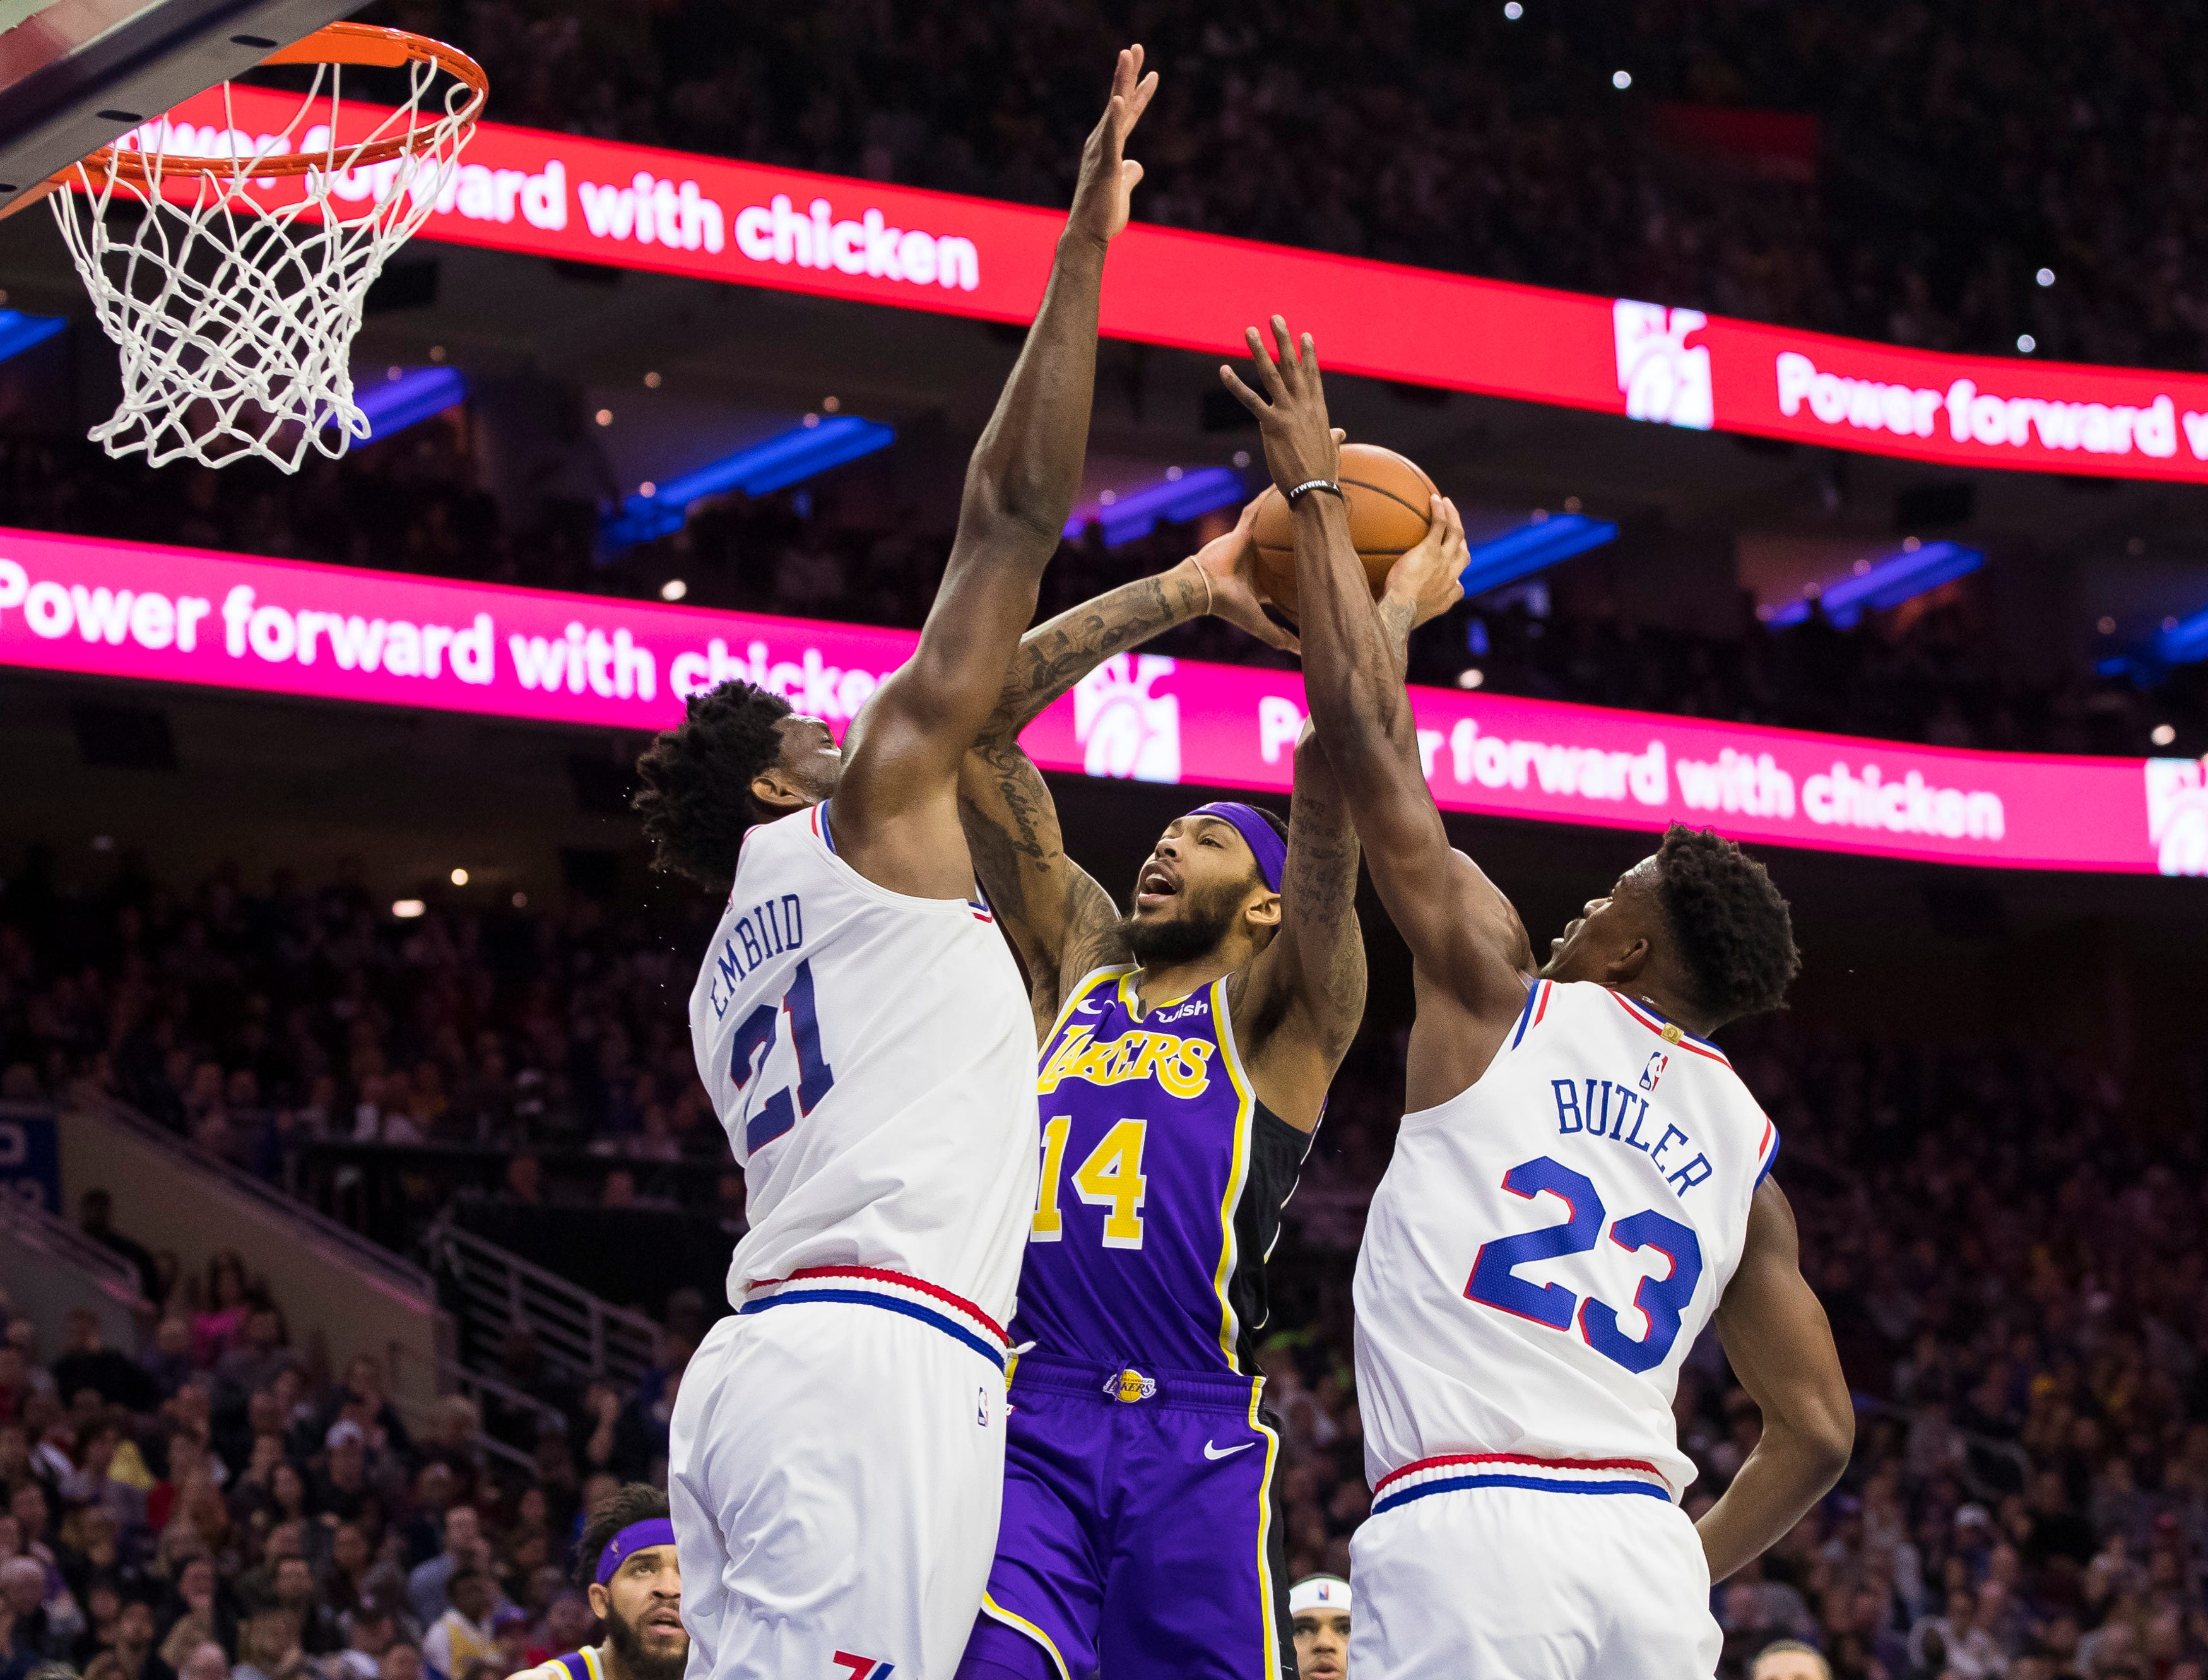 Los Angeles Lakers' Brandon Ingram, center, goes up for the shot against Philadelphia 76ers' Joel Embiid, left, of Cameroon, and Jimmy Butler, right, during the first half of an NBA basketball game, Sunday, Feb. 10, 2019, in Philadelphia. (AP Photo/Chris Szagola)